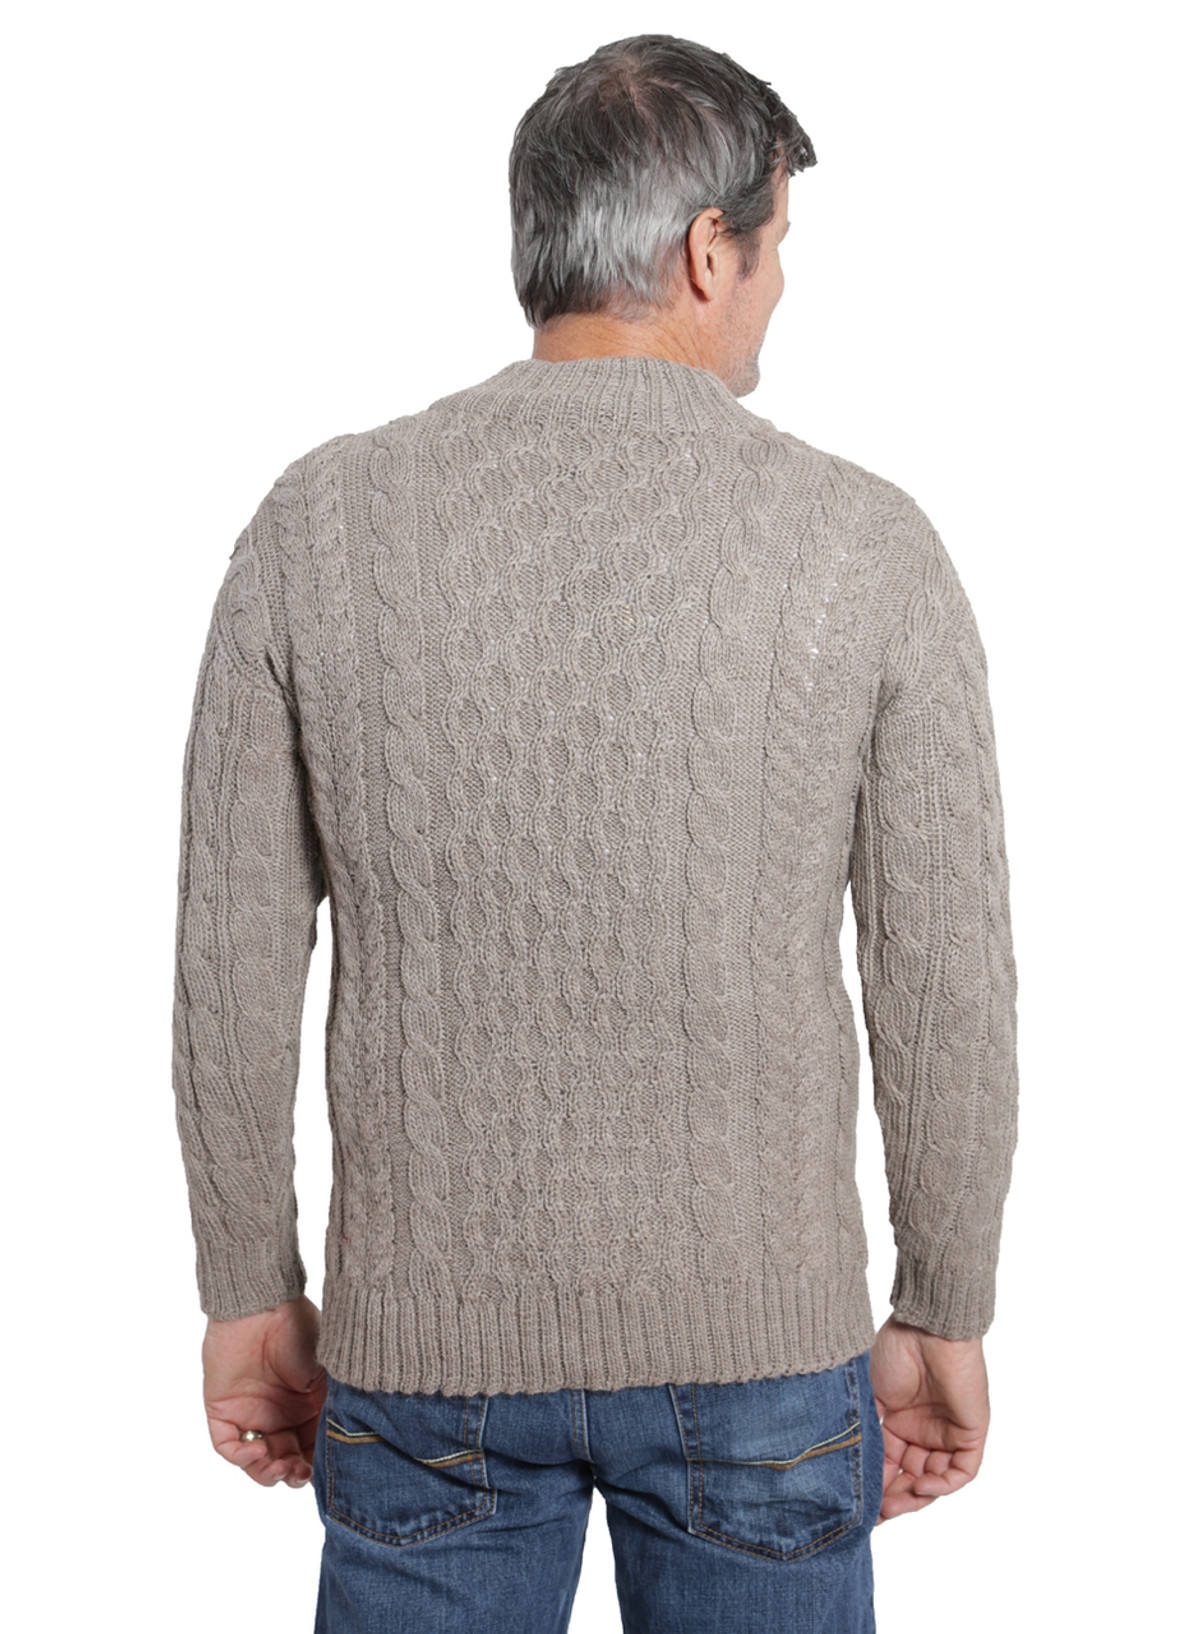 Men's Cable 3-Button Neck Pullover Alpaca Sweater | Sun Valley ...